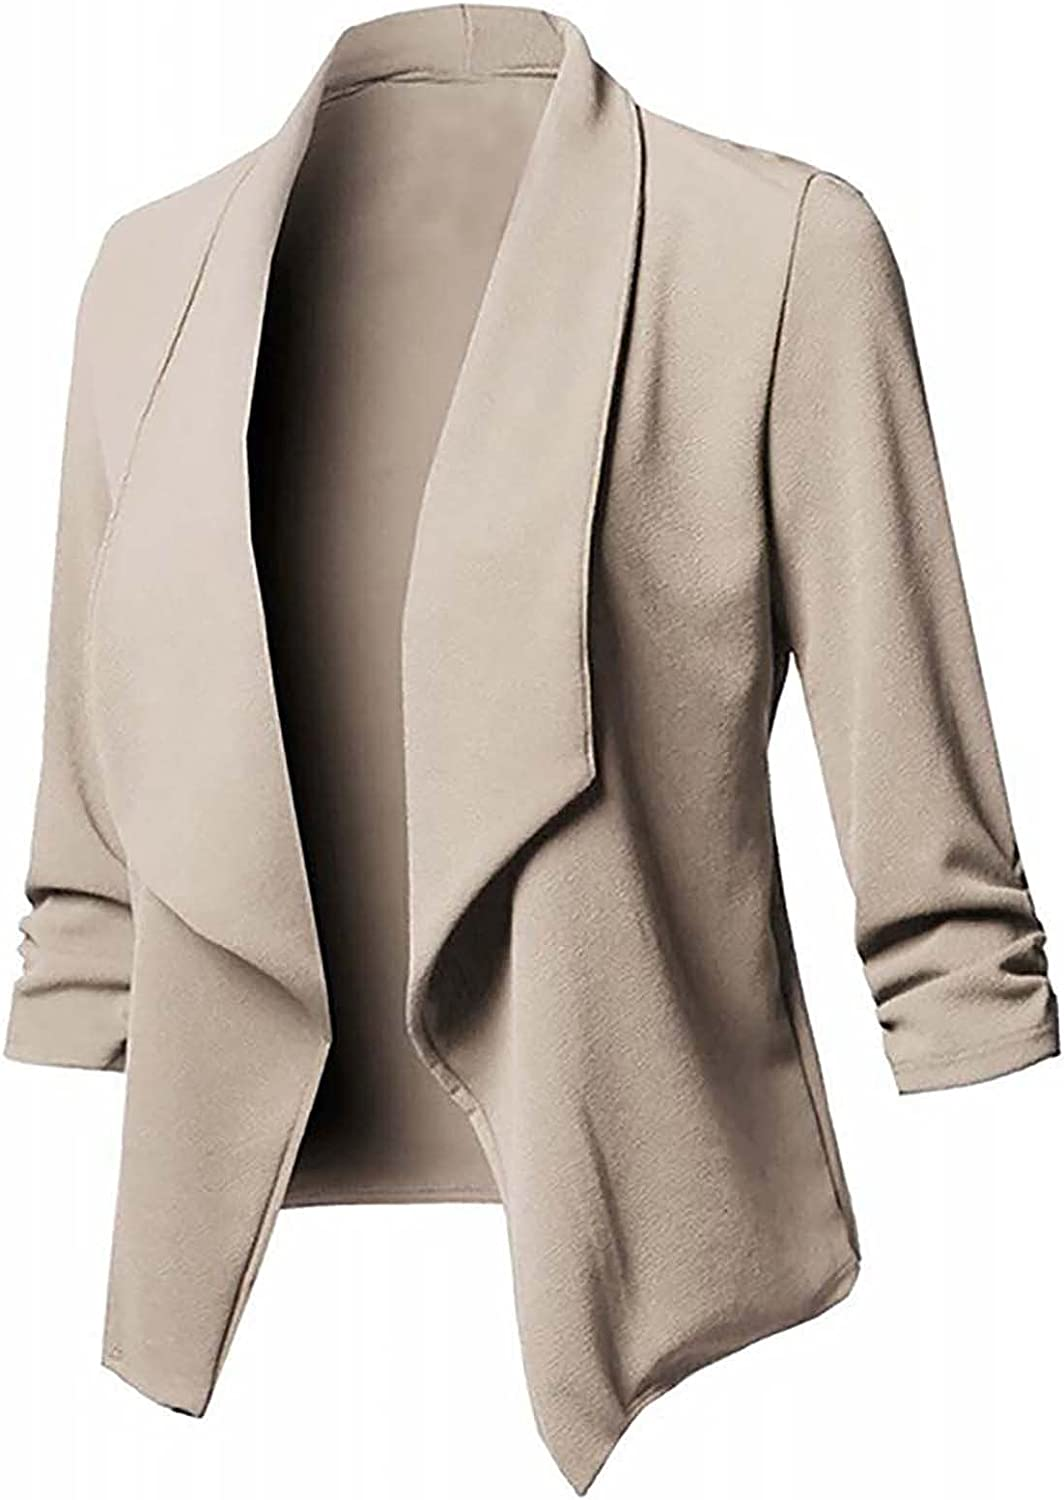 Blazers for Women Office Business Jacksonville Mall Casual Colo Suit Japan Maker New Jackets Solid